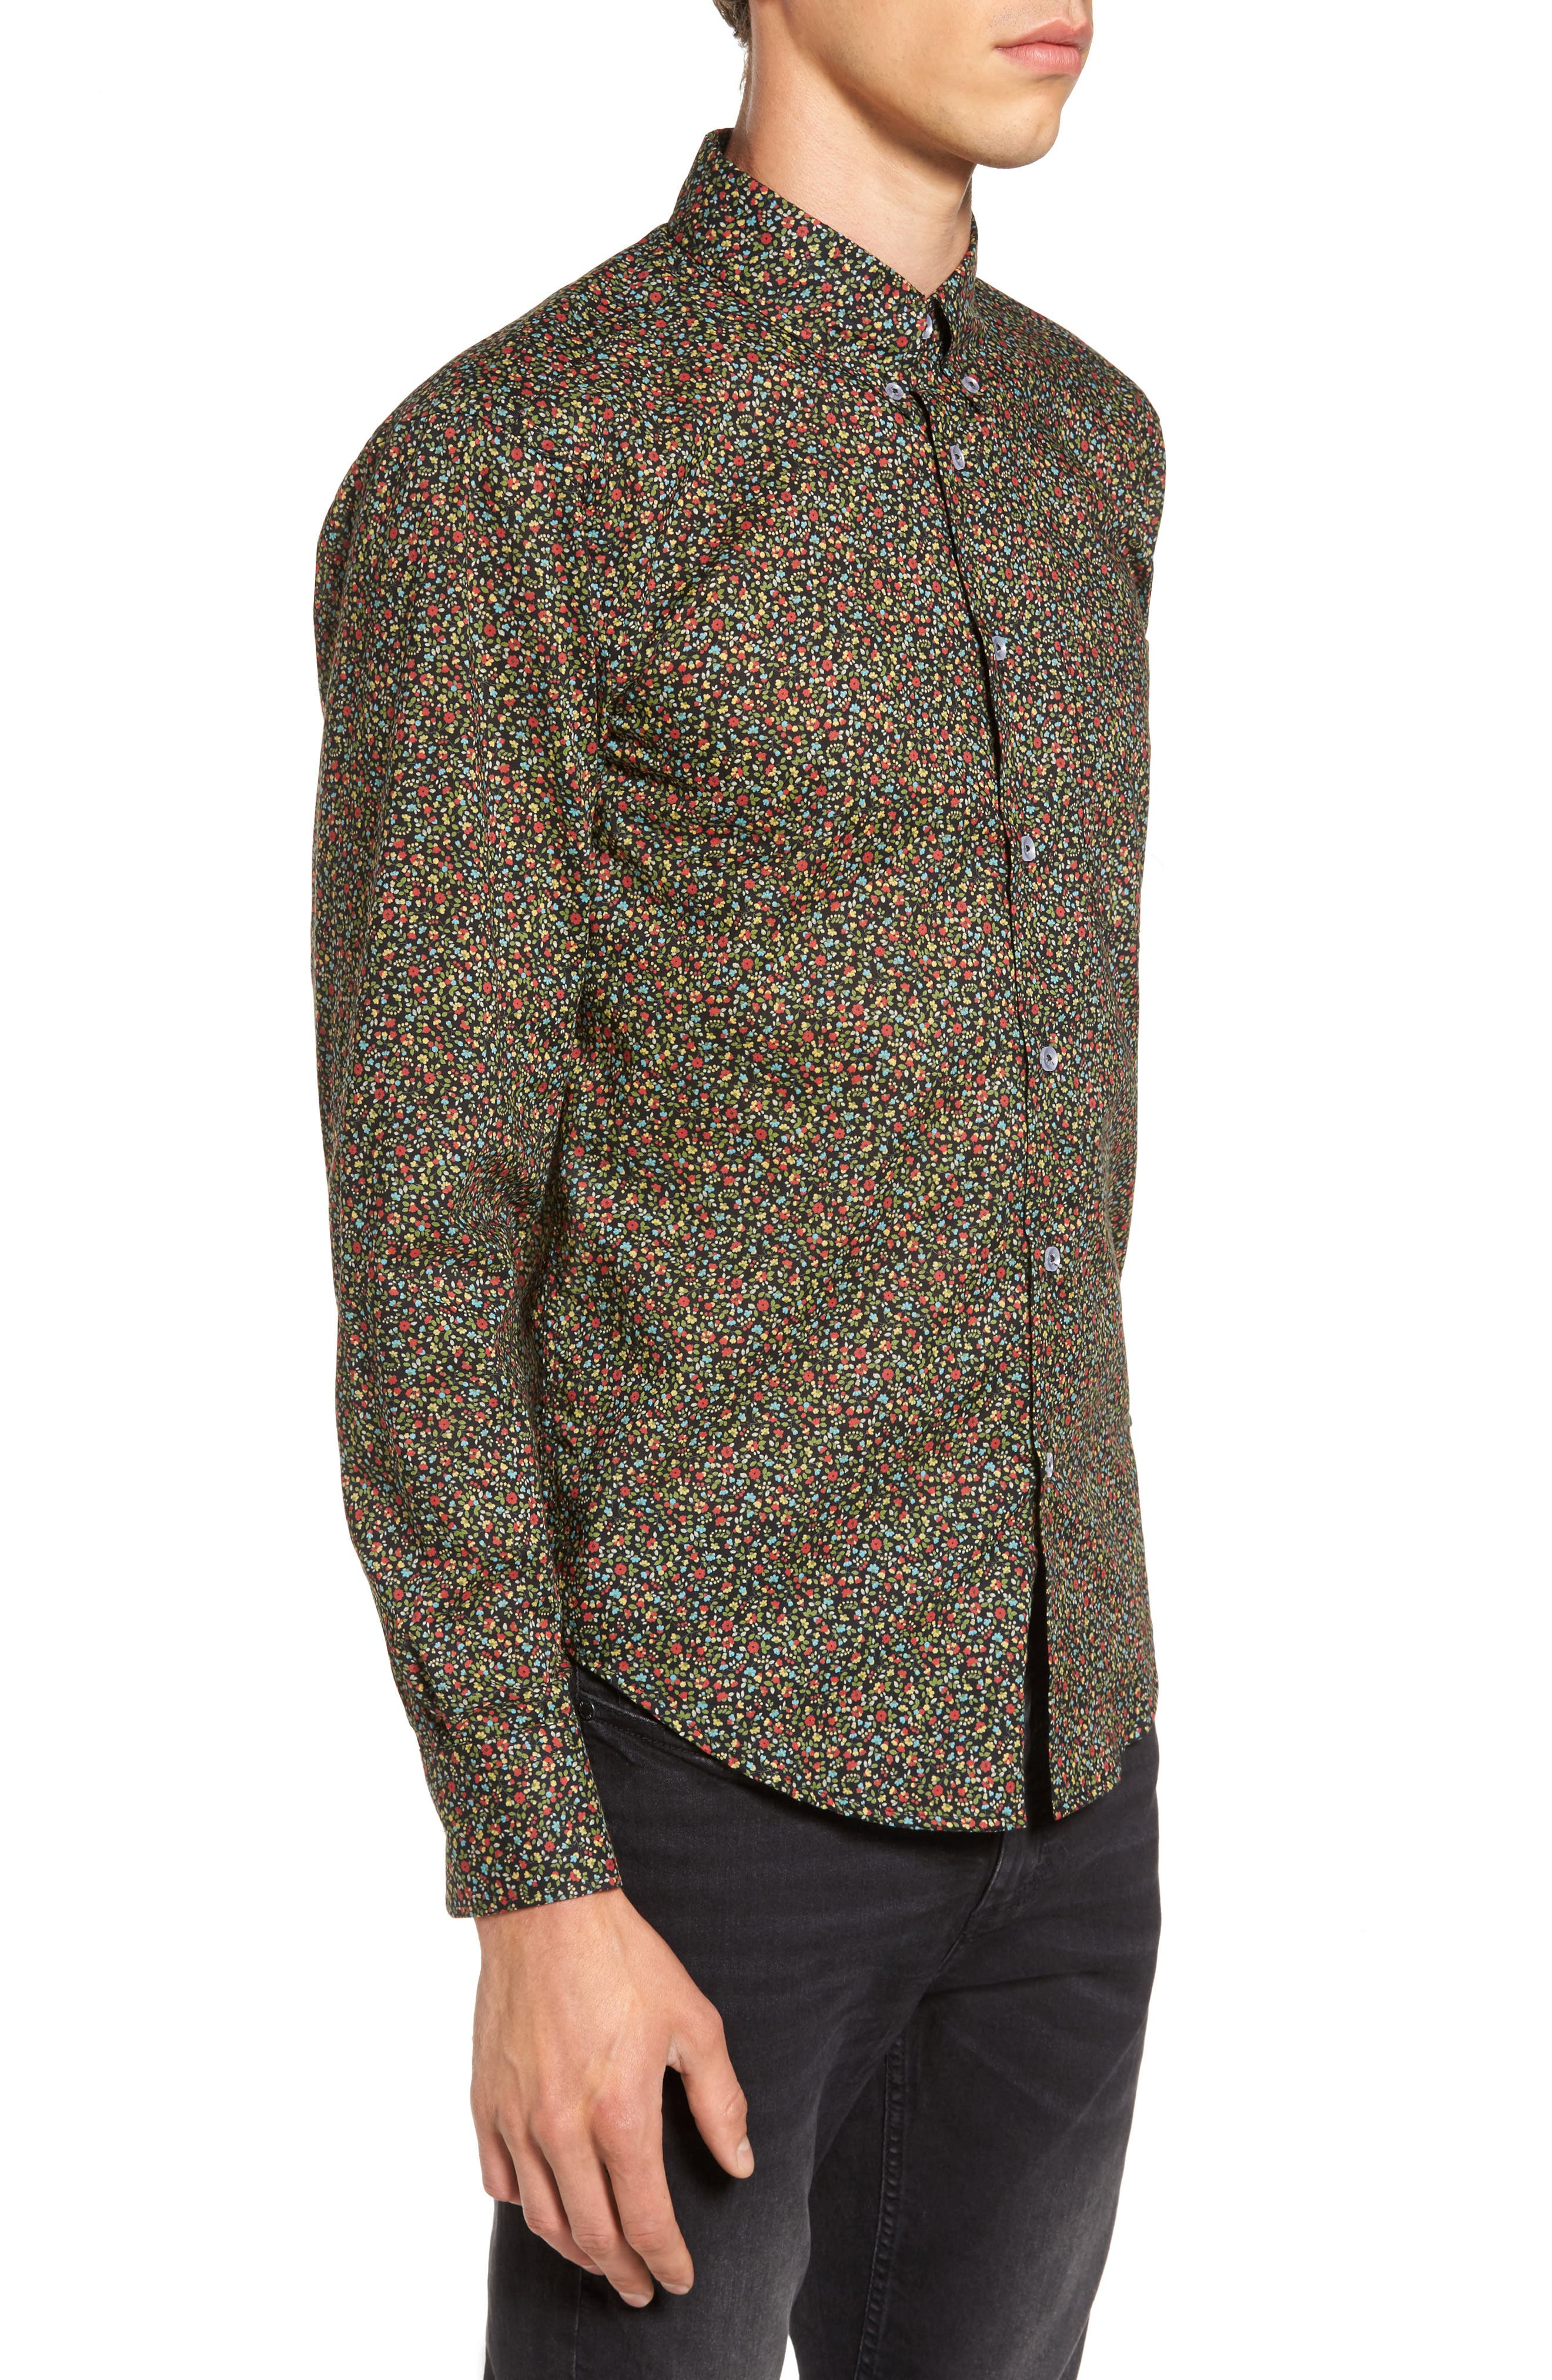 Naked & Famous Floral Shirt,                             Alternate thumbnail 3, color,